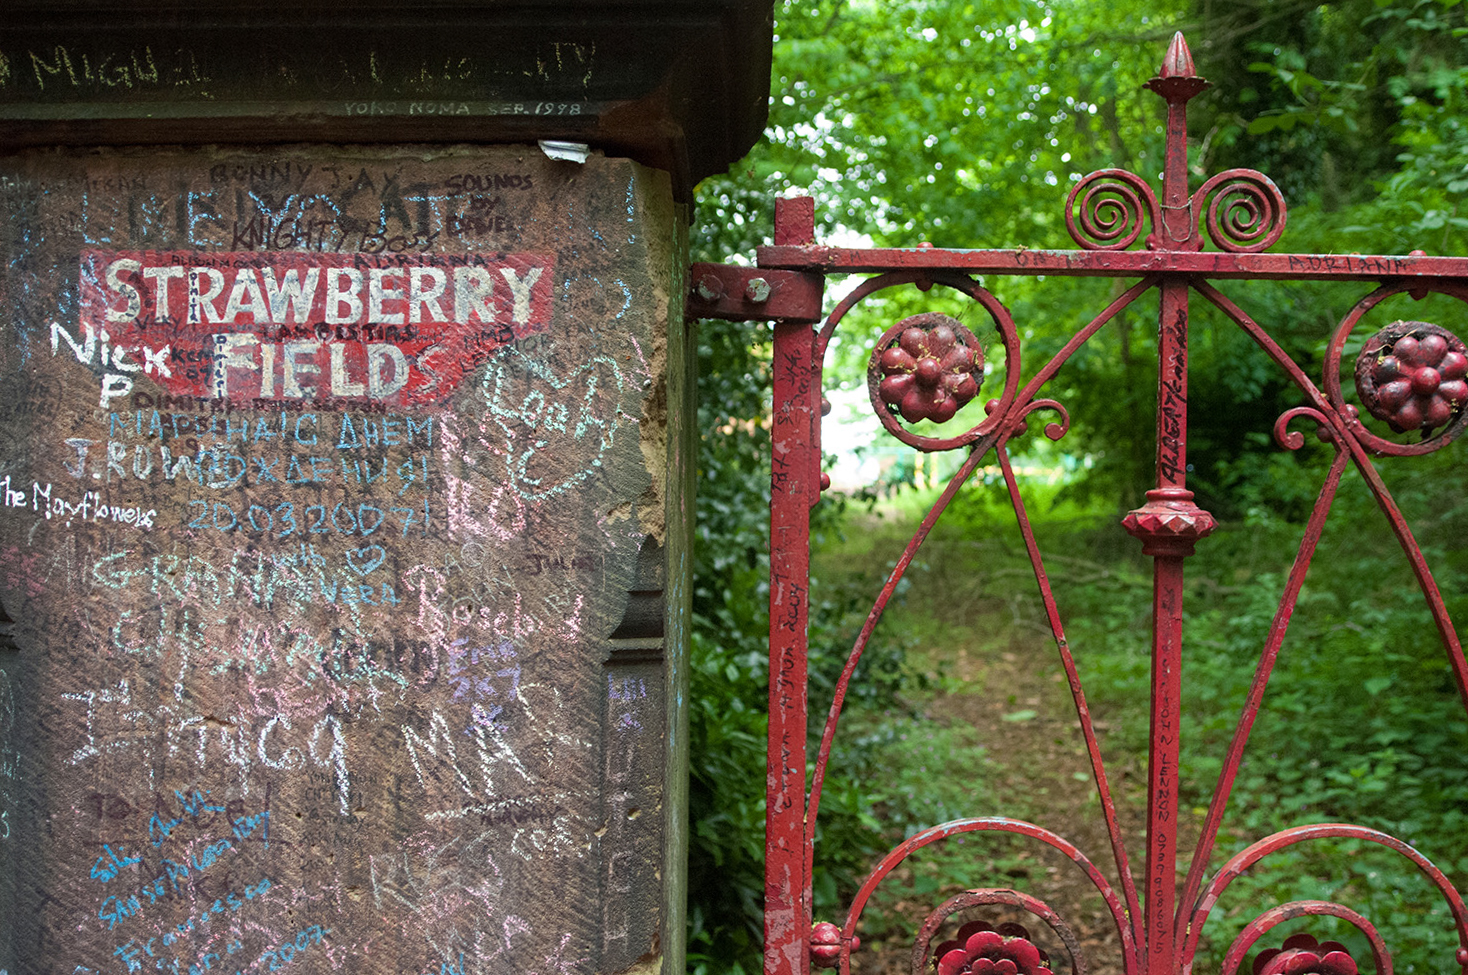 Strawberry Field is just one of the sights you'll see on our Liverpool photo tour.